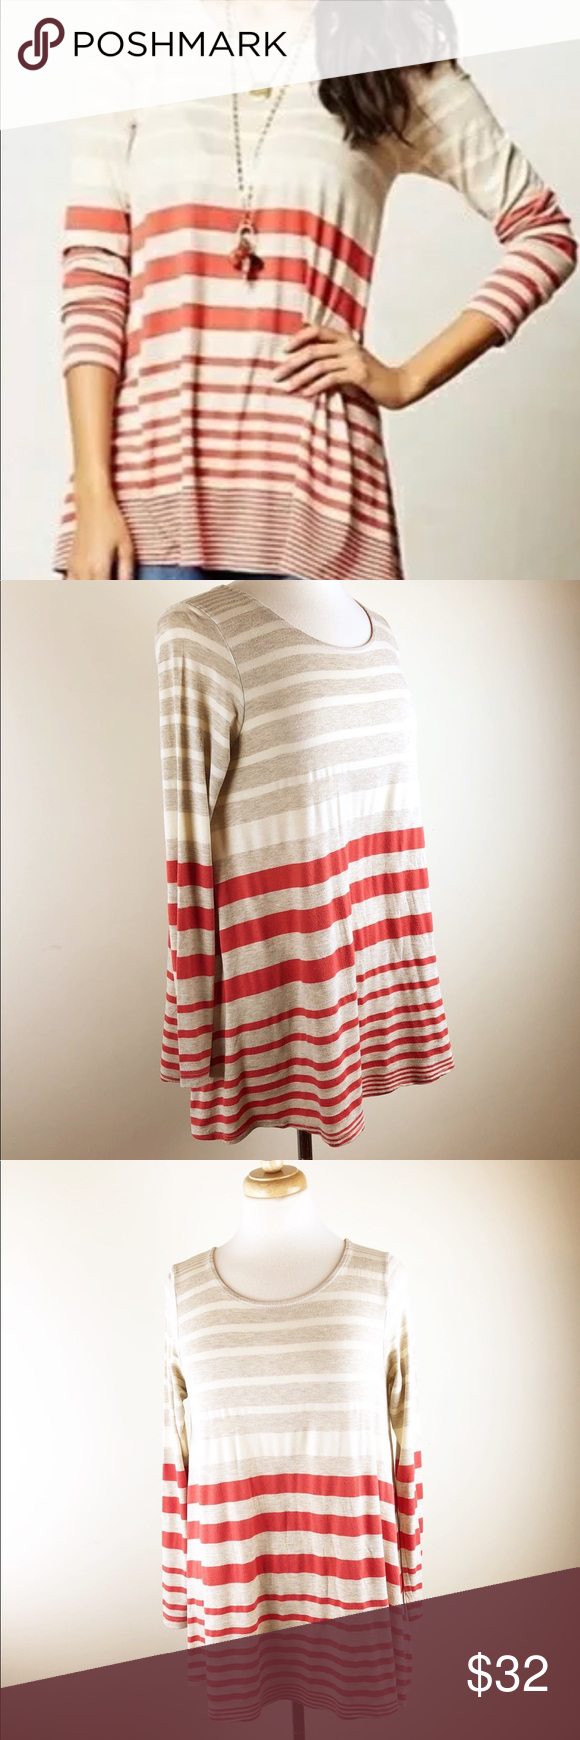 93fc2816561 Anthropologie Puebla Darcy Swing Tunic Striped M Anthropologie Puebla long  sleeve tunic swing top. Horizontal stripes in orange cream And oatmeal, ...